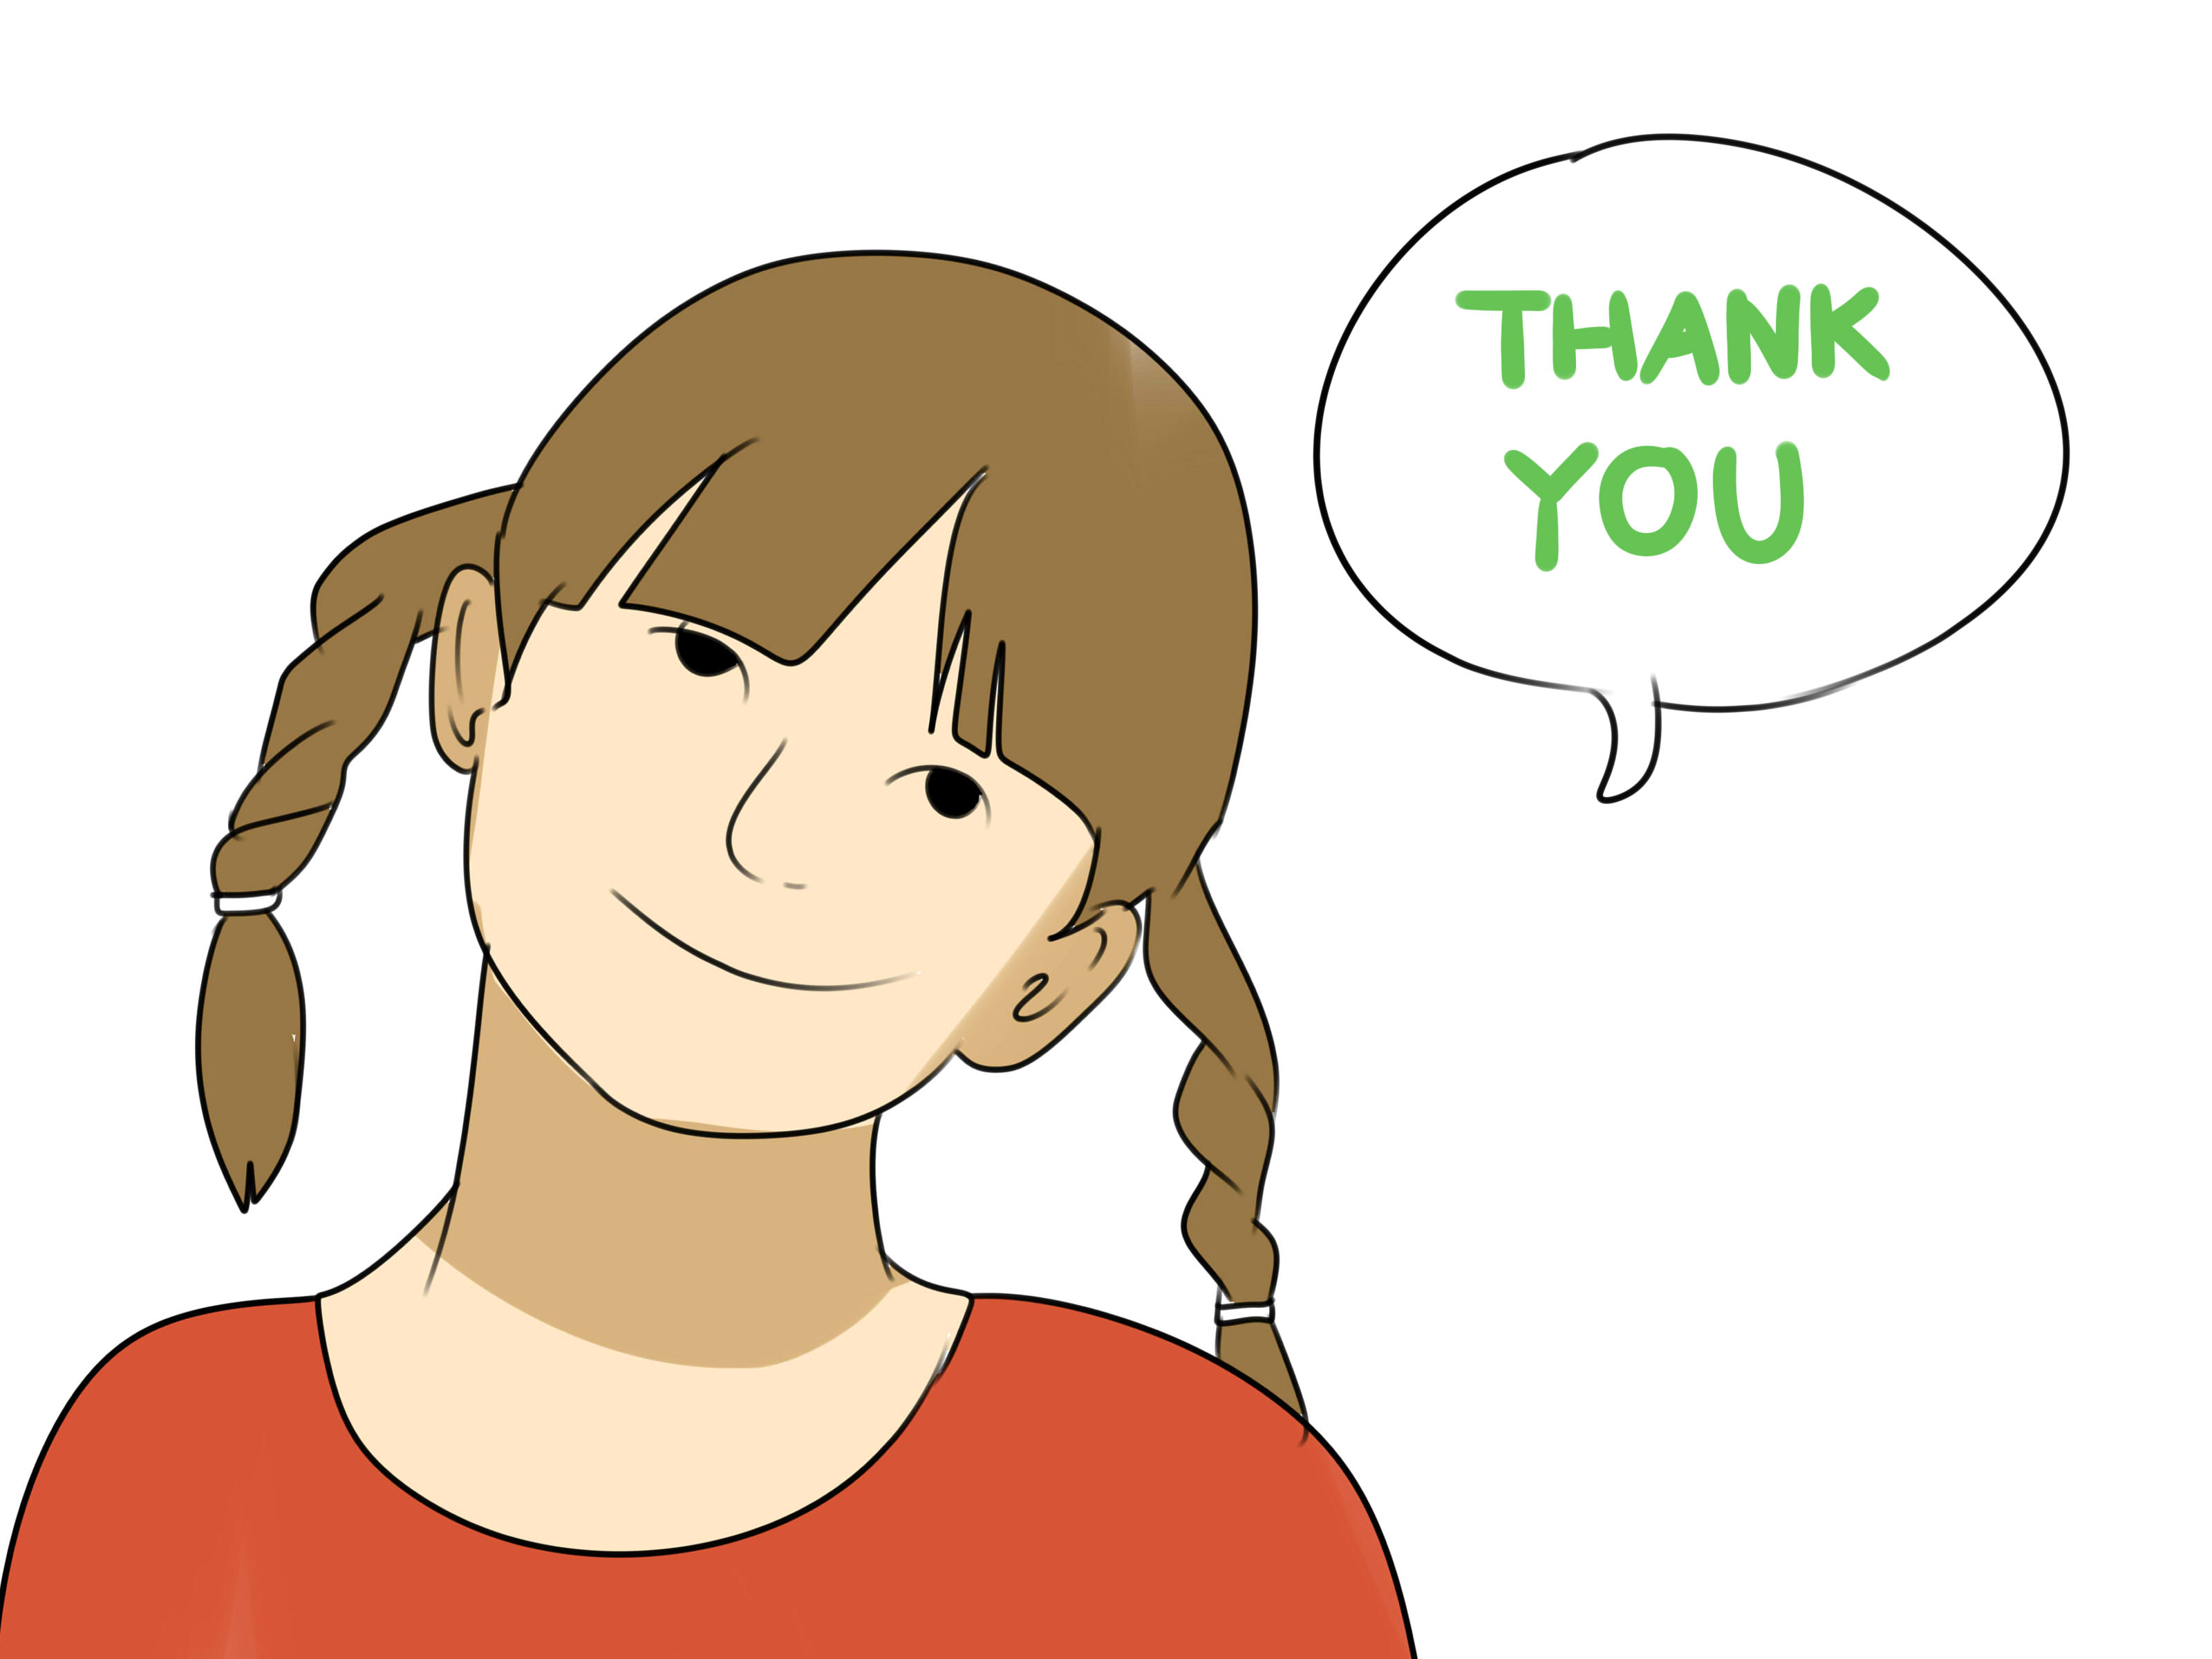 People nice kid cl. Being kind clipart